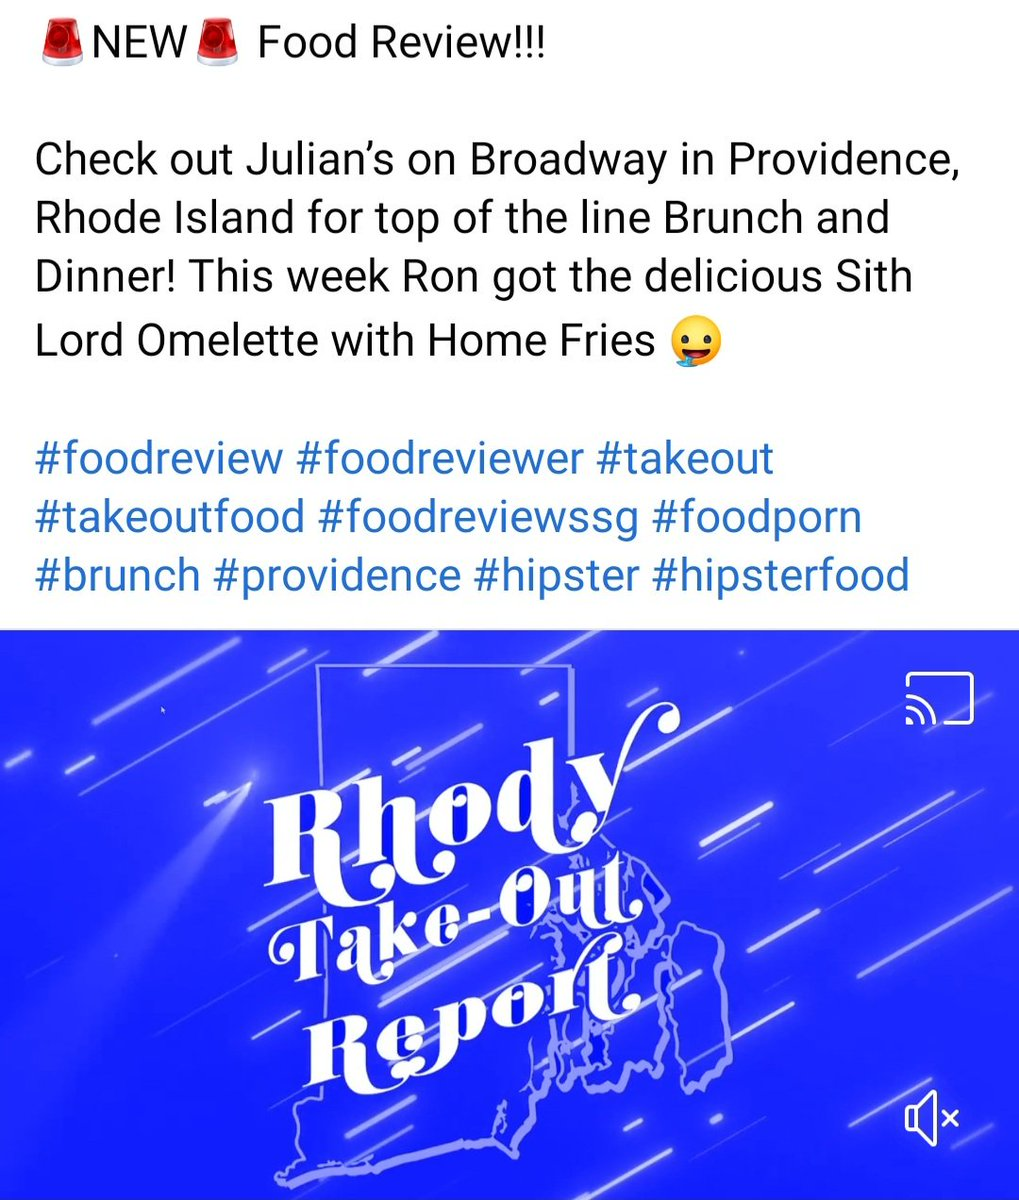 🚨NEW🚨 Food Review! Check out @julianspvd... Watch the Rhody Take-out Report here: https://t.co/uwSoJk0zDU  #foodreview #foodreviewer #takeout #takeoutfood #foodreviewssg #foodporn #brunch #providence #hipster #hipsterfood https://t.co/8GujYN3Kqh